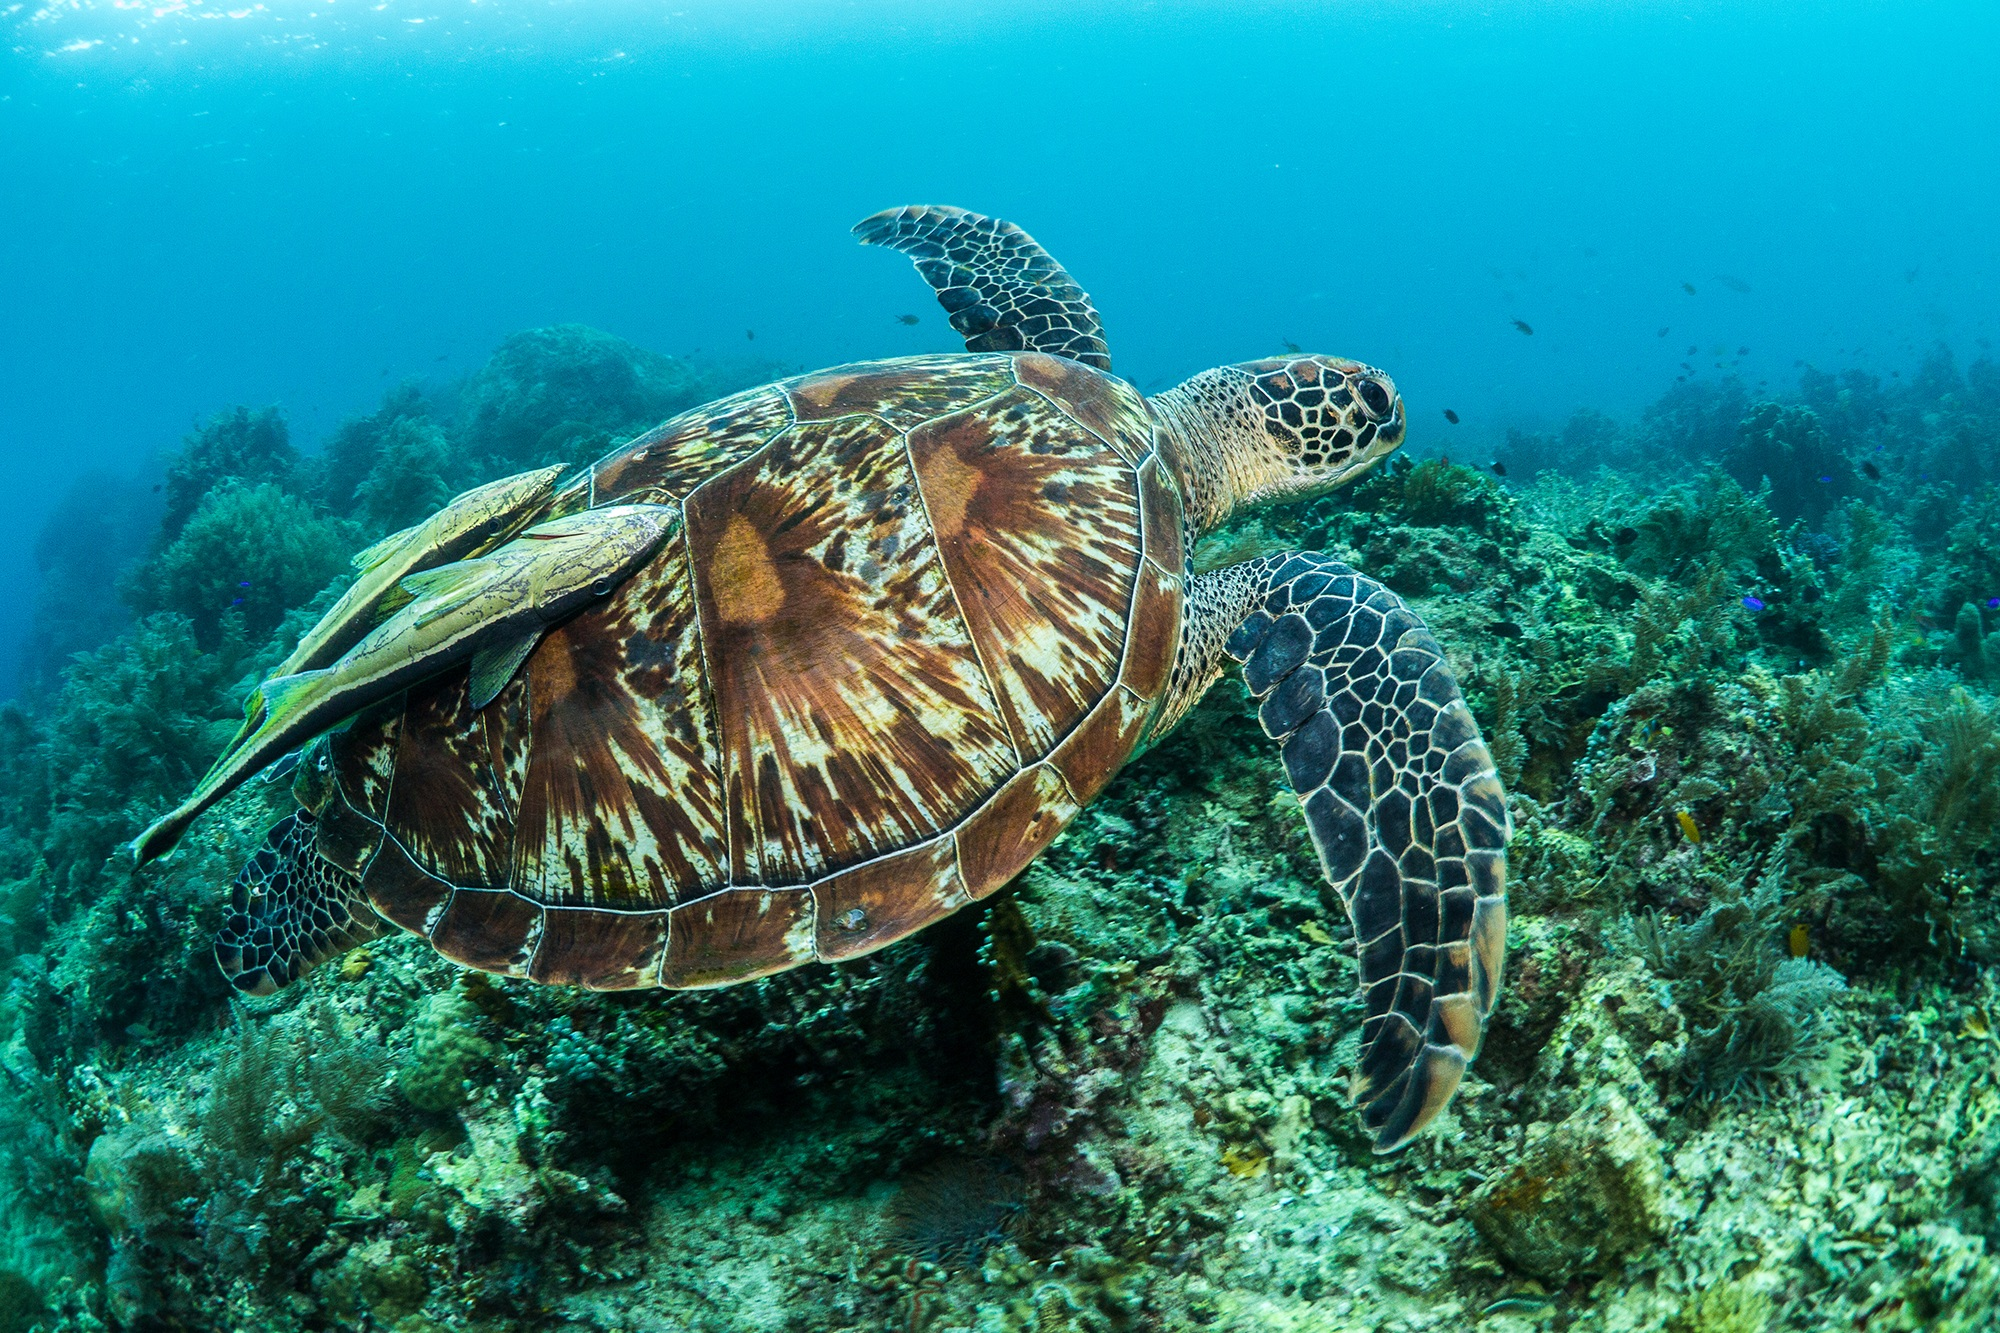 GREEN TURTLE IN THE PHILIPPINES CREDIT: SIMON J. PIERCE/ coral reef image bank